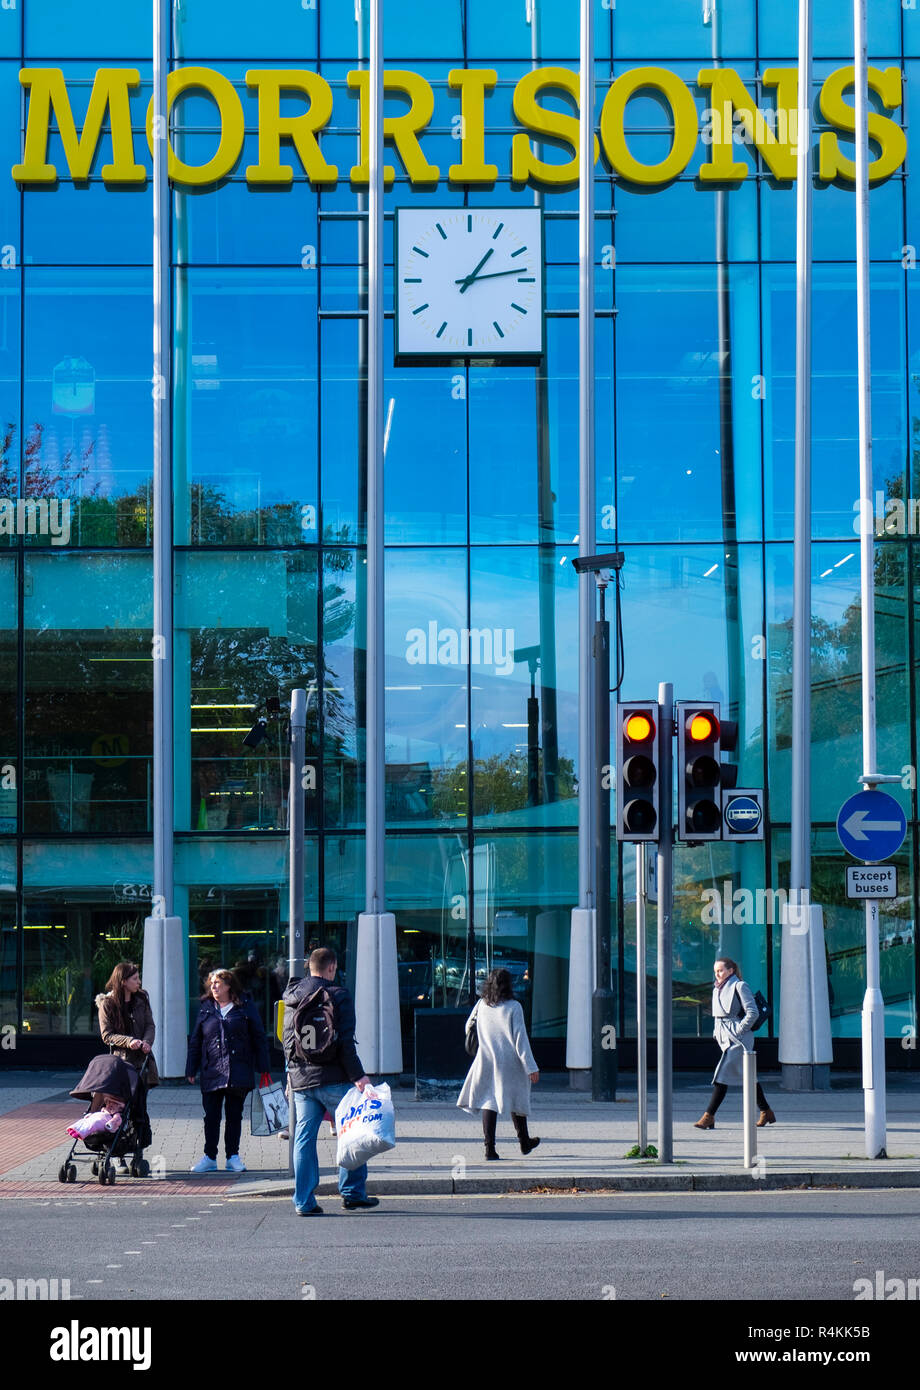 Morrisons supermarket exterior, Crawley, Sussex, UK - Stock Image